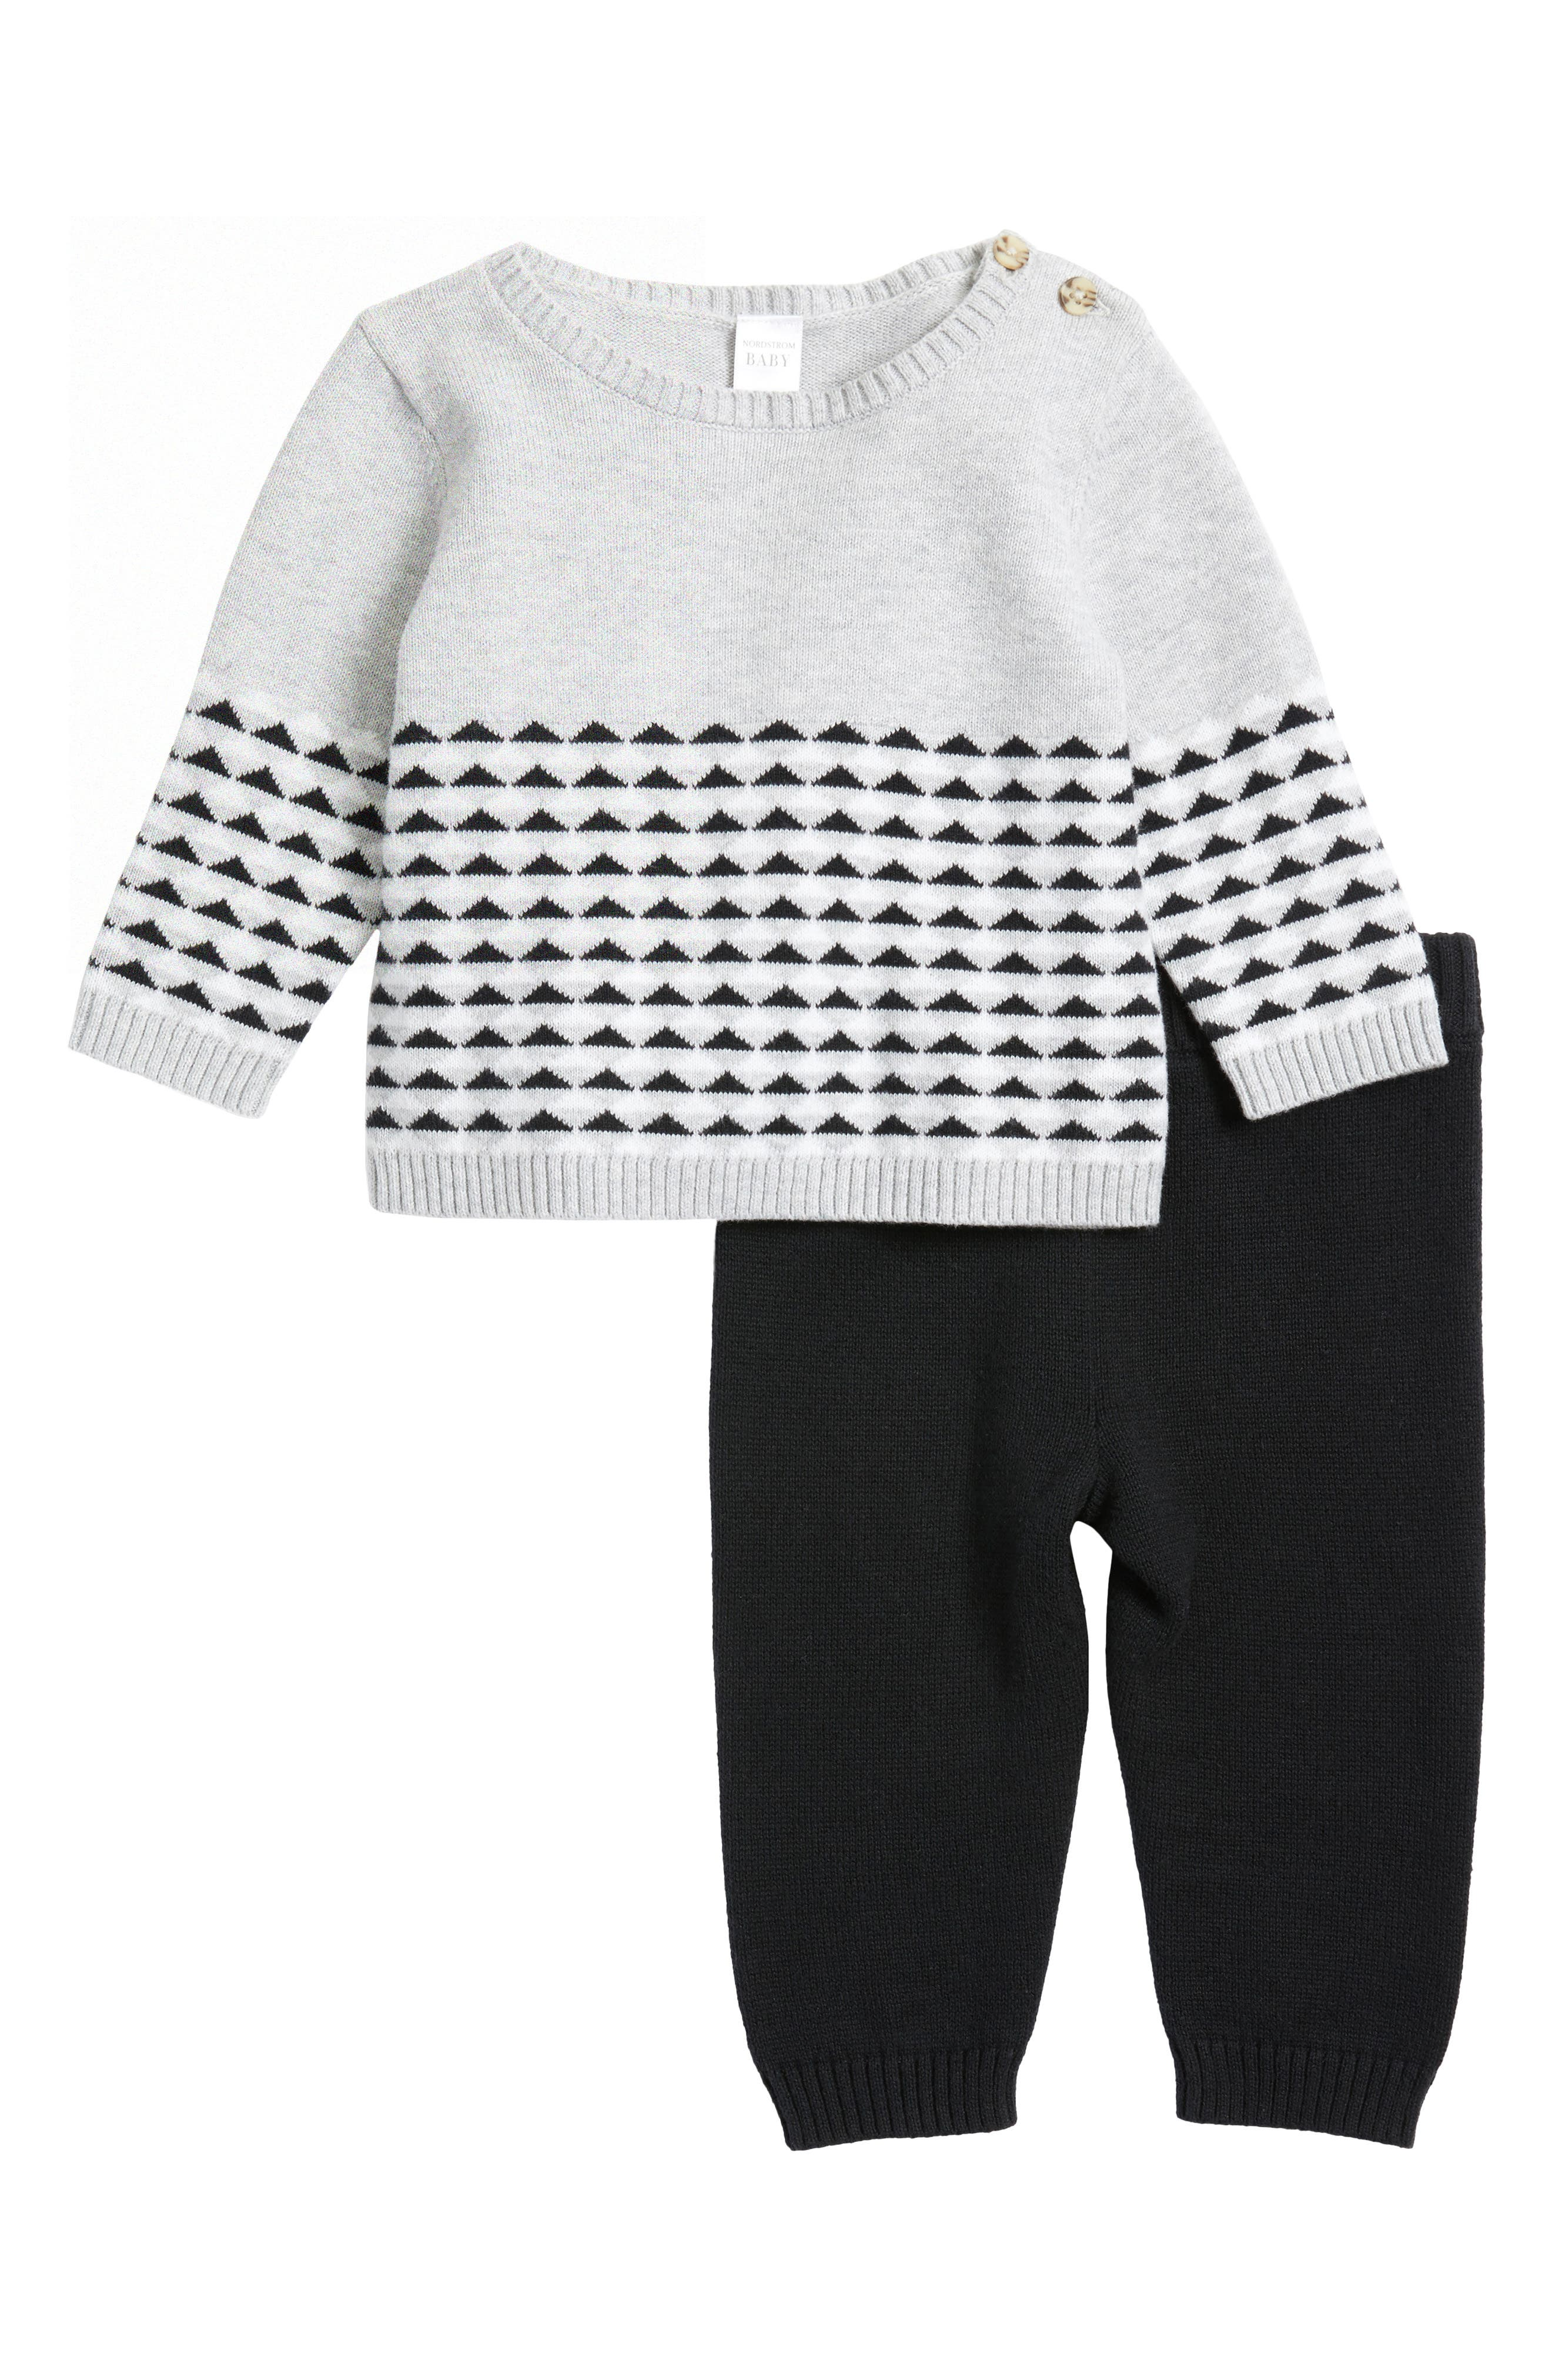 Alternate Image 1 Selected - Nordstrom Baby Sweater & Pants